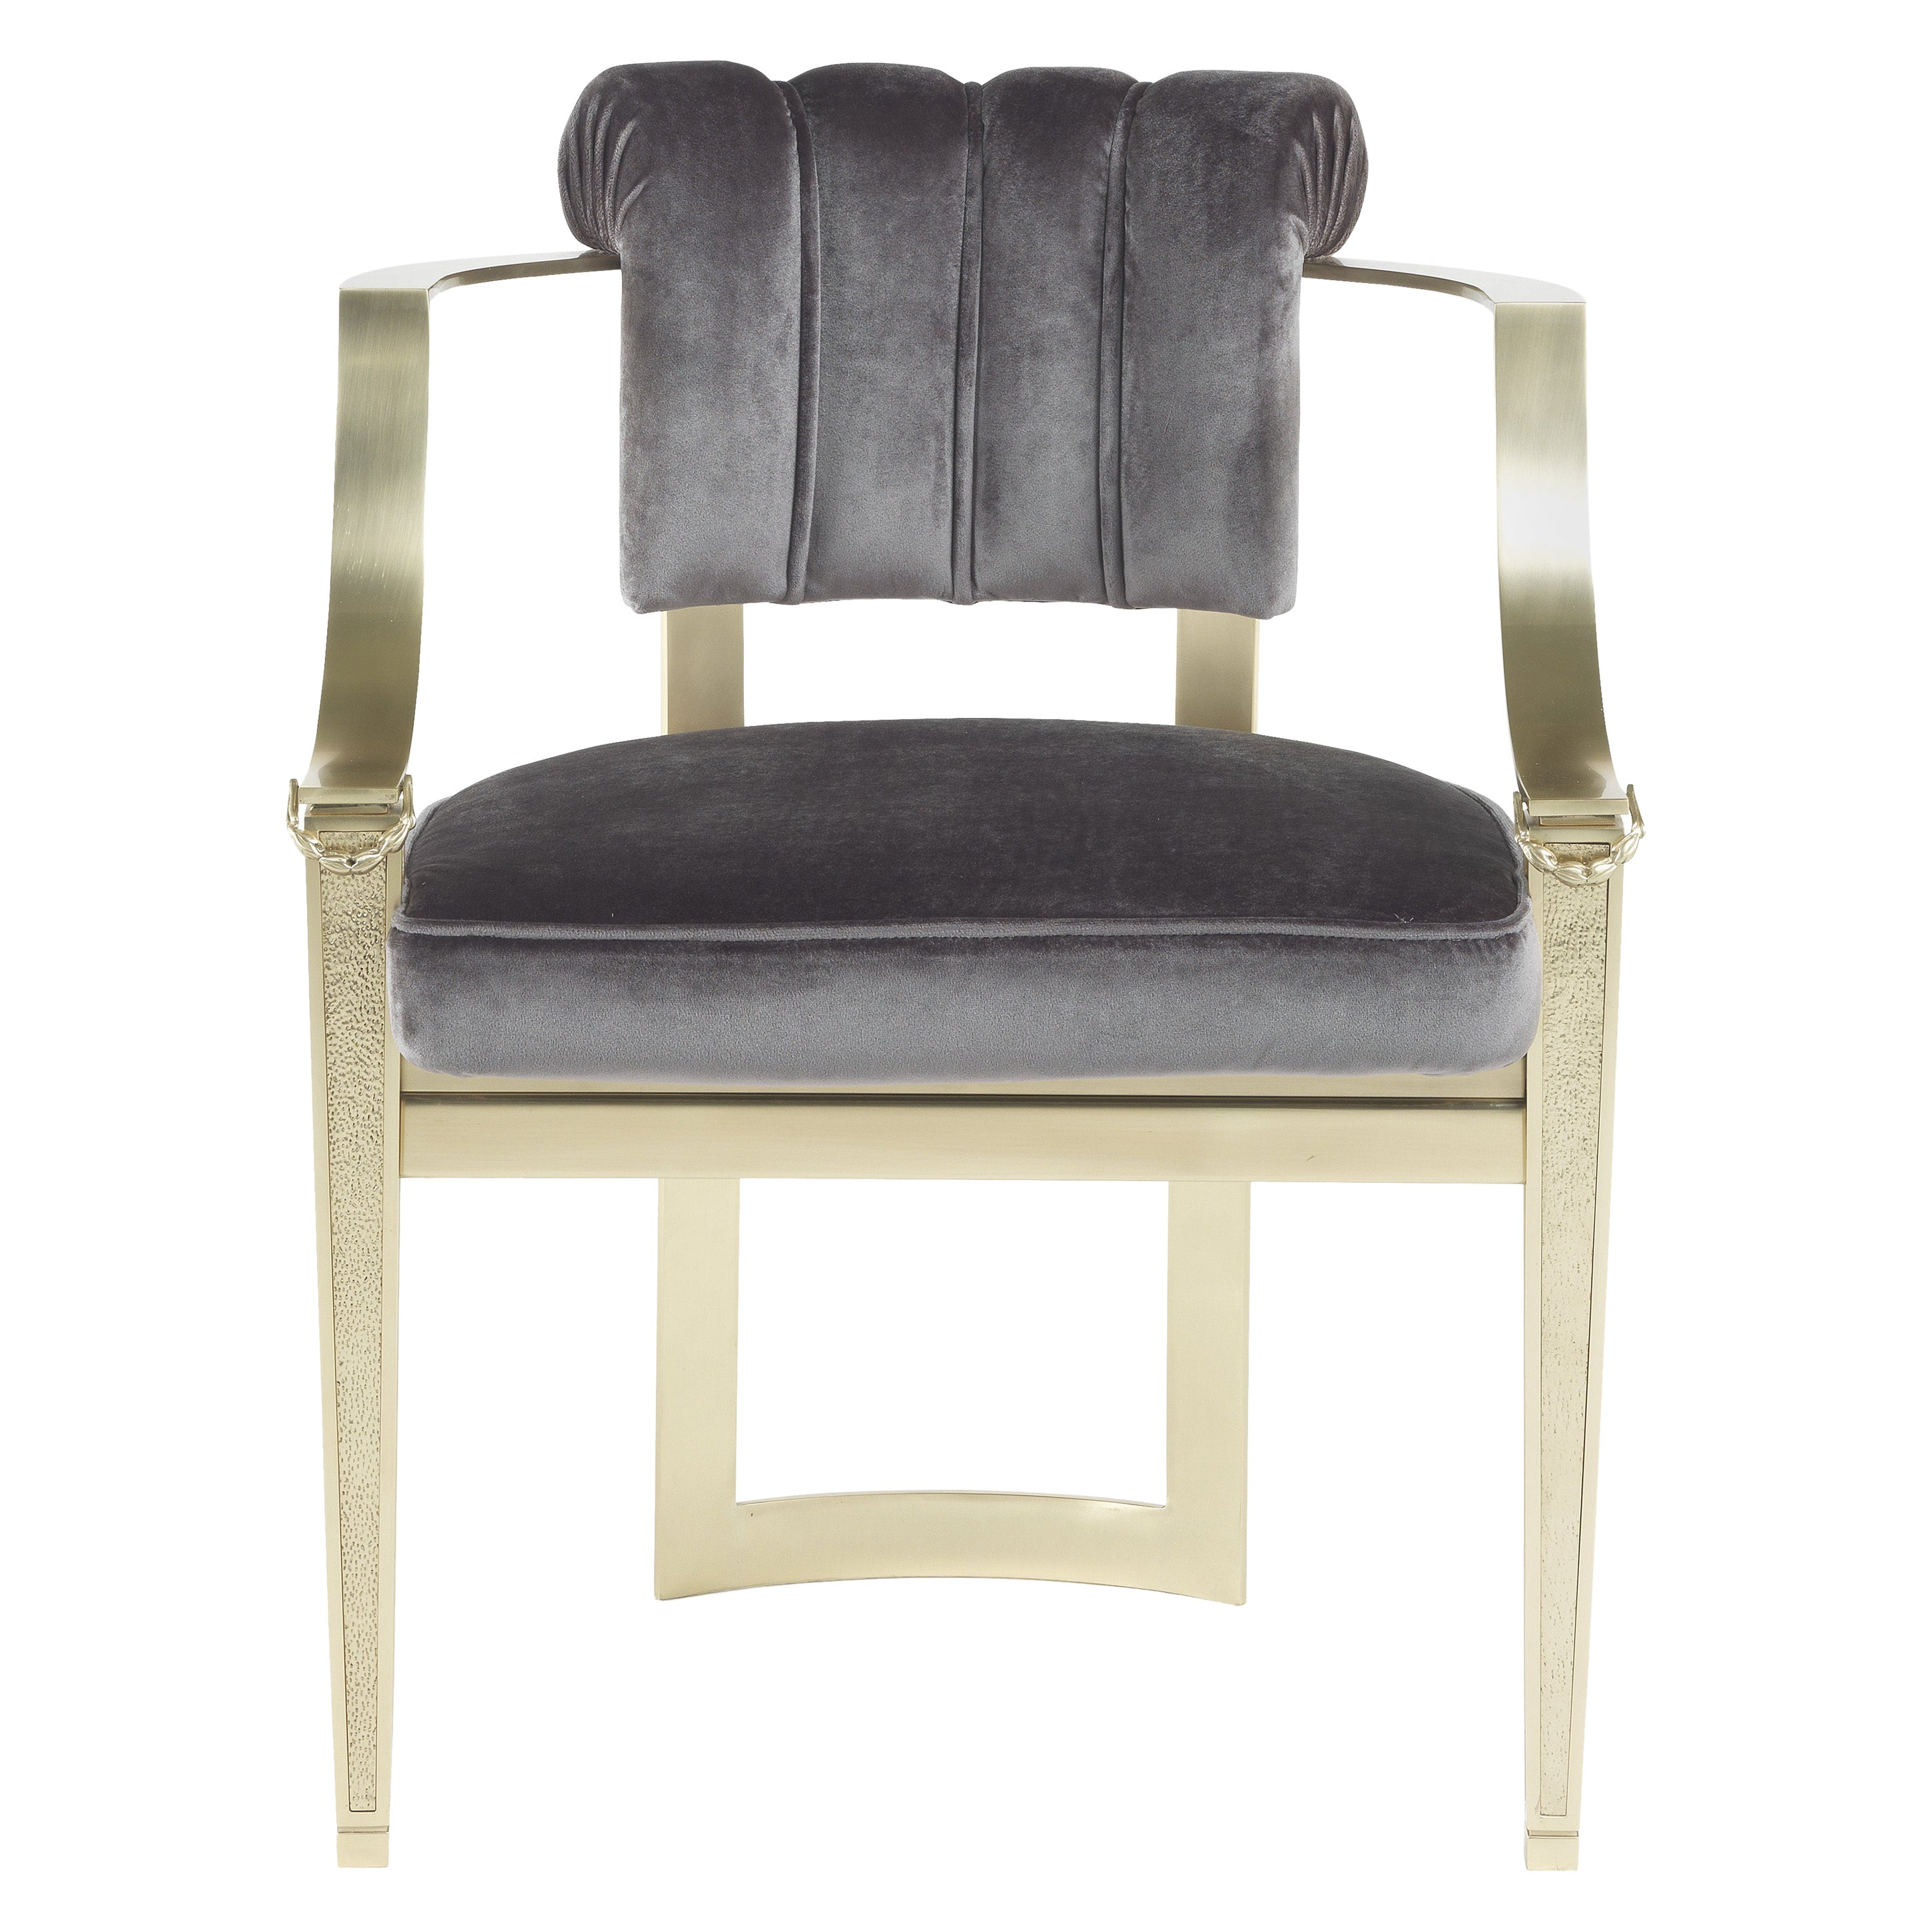 Jumbo Collection Fuji Chair in Brass and Fabric